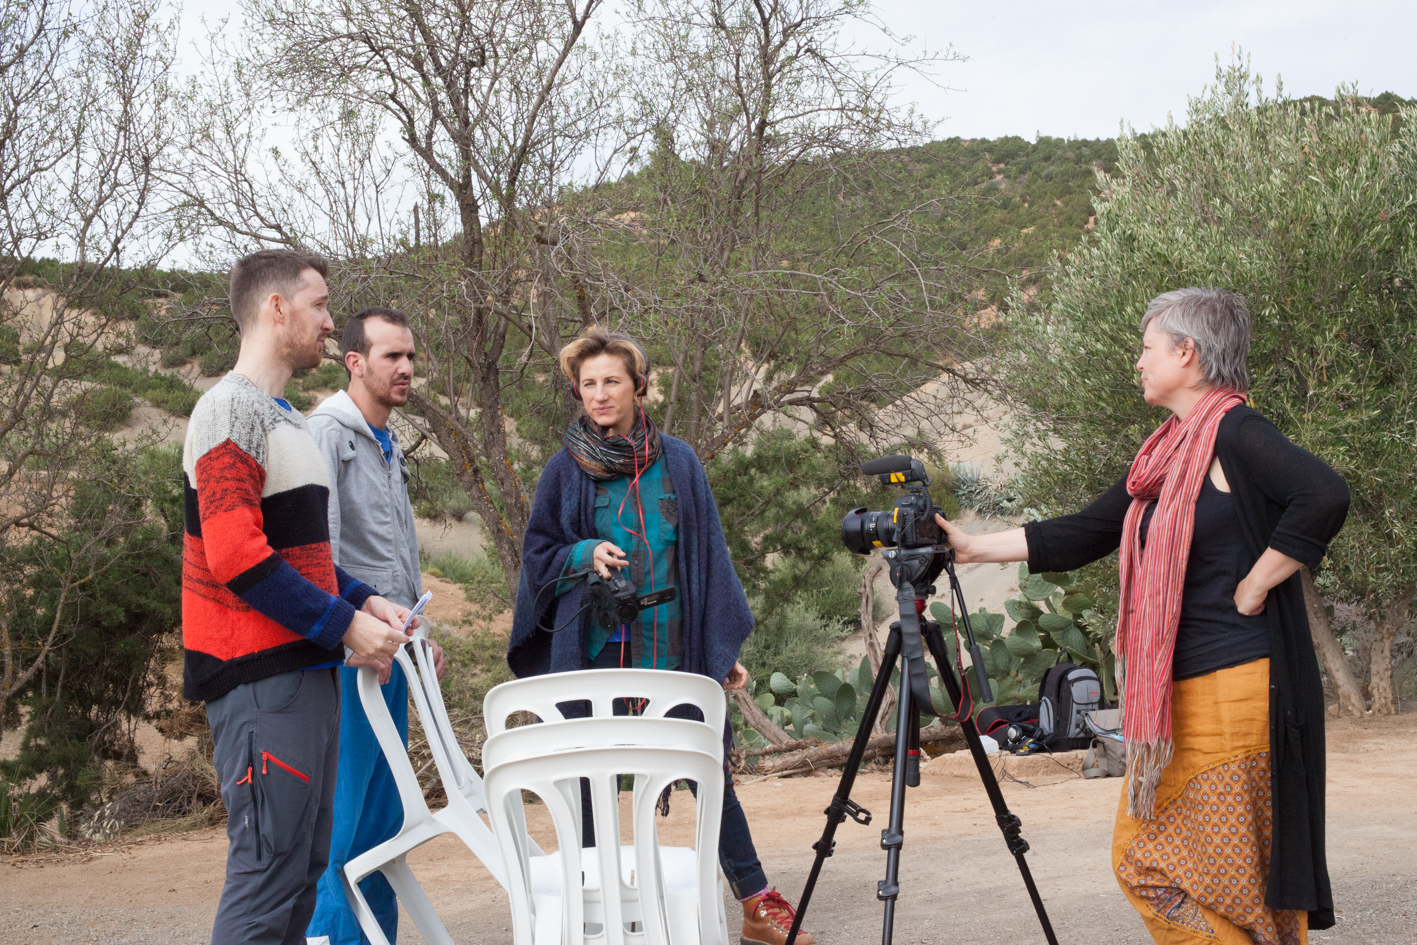 Left to right: Brendan StJohn (co-ordinator of the Changing Lives Programme Morocco), Youness Beraouz (local resident) and Cat Wilson (photographer) on a set of a promotional video for the Changing Lives Programme